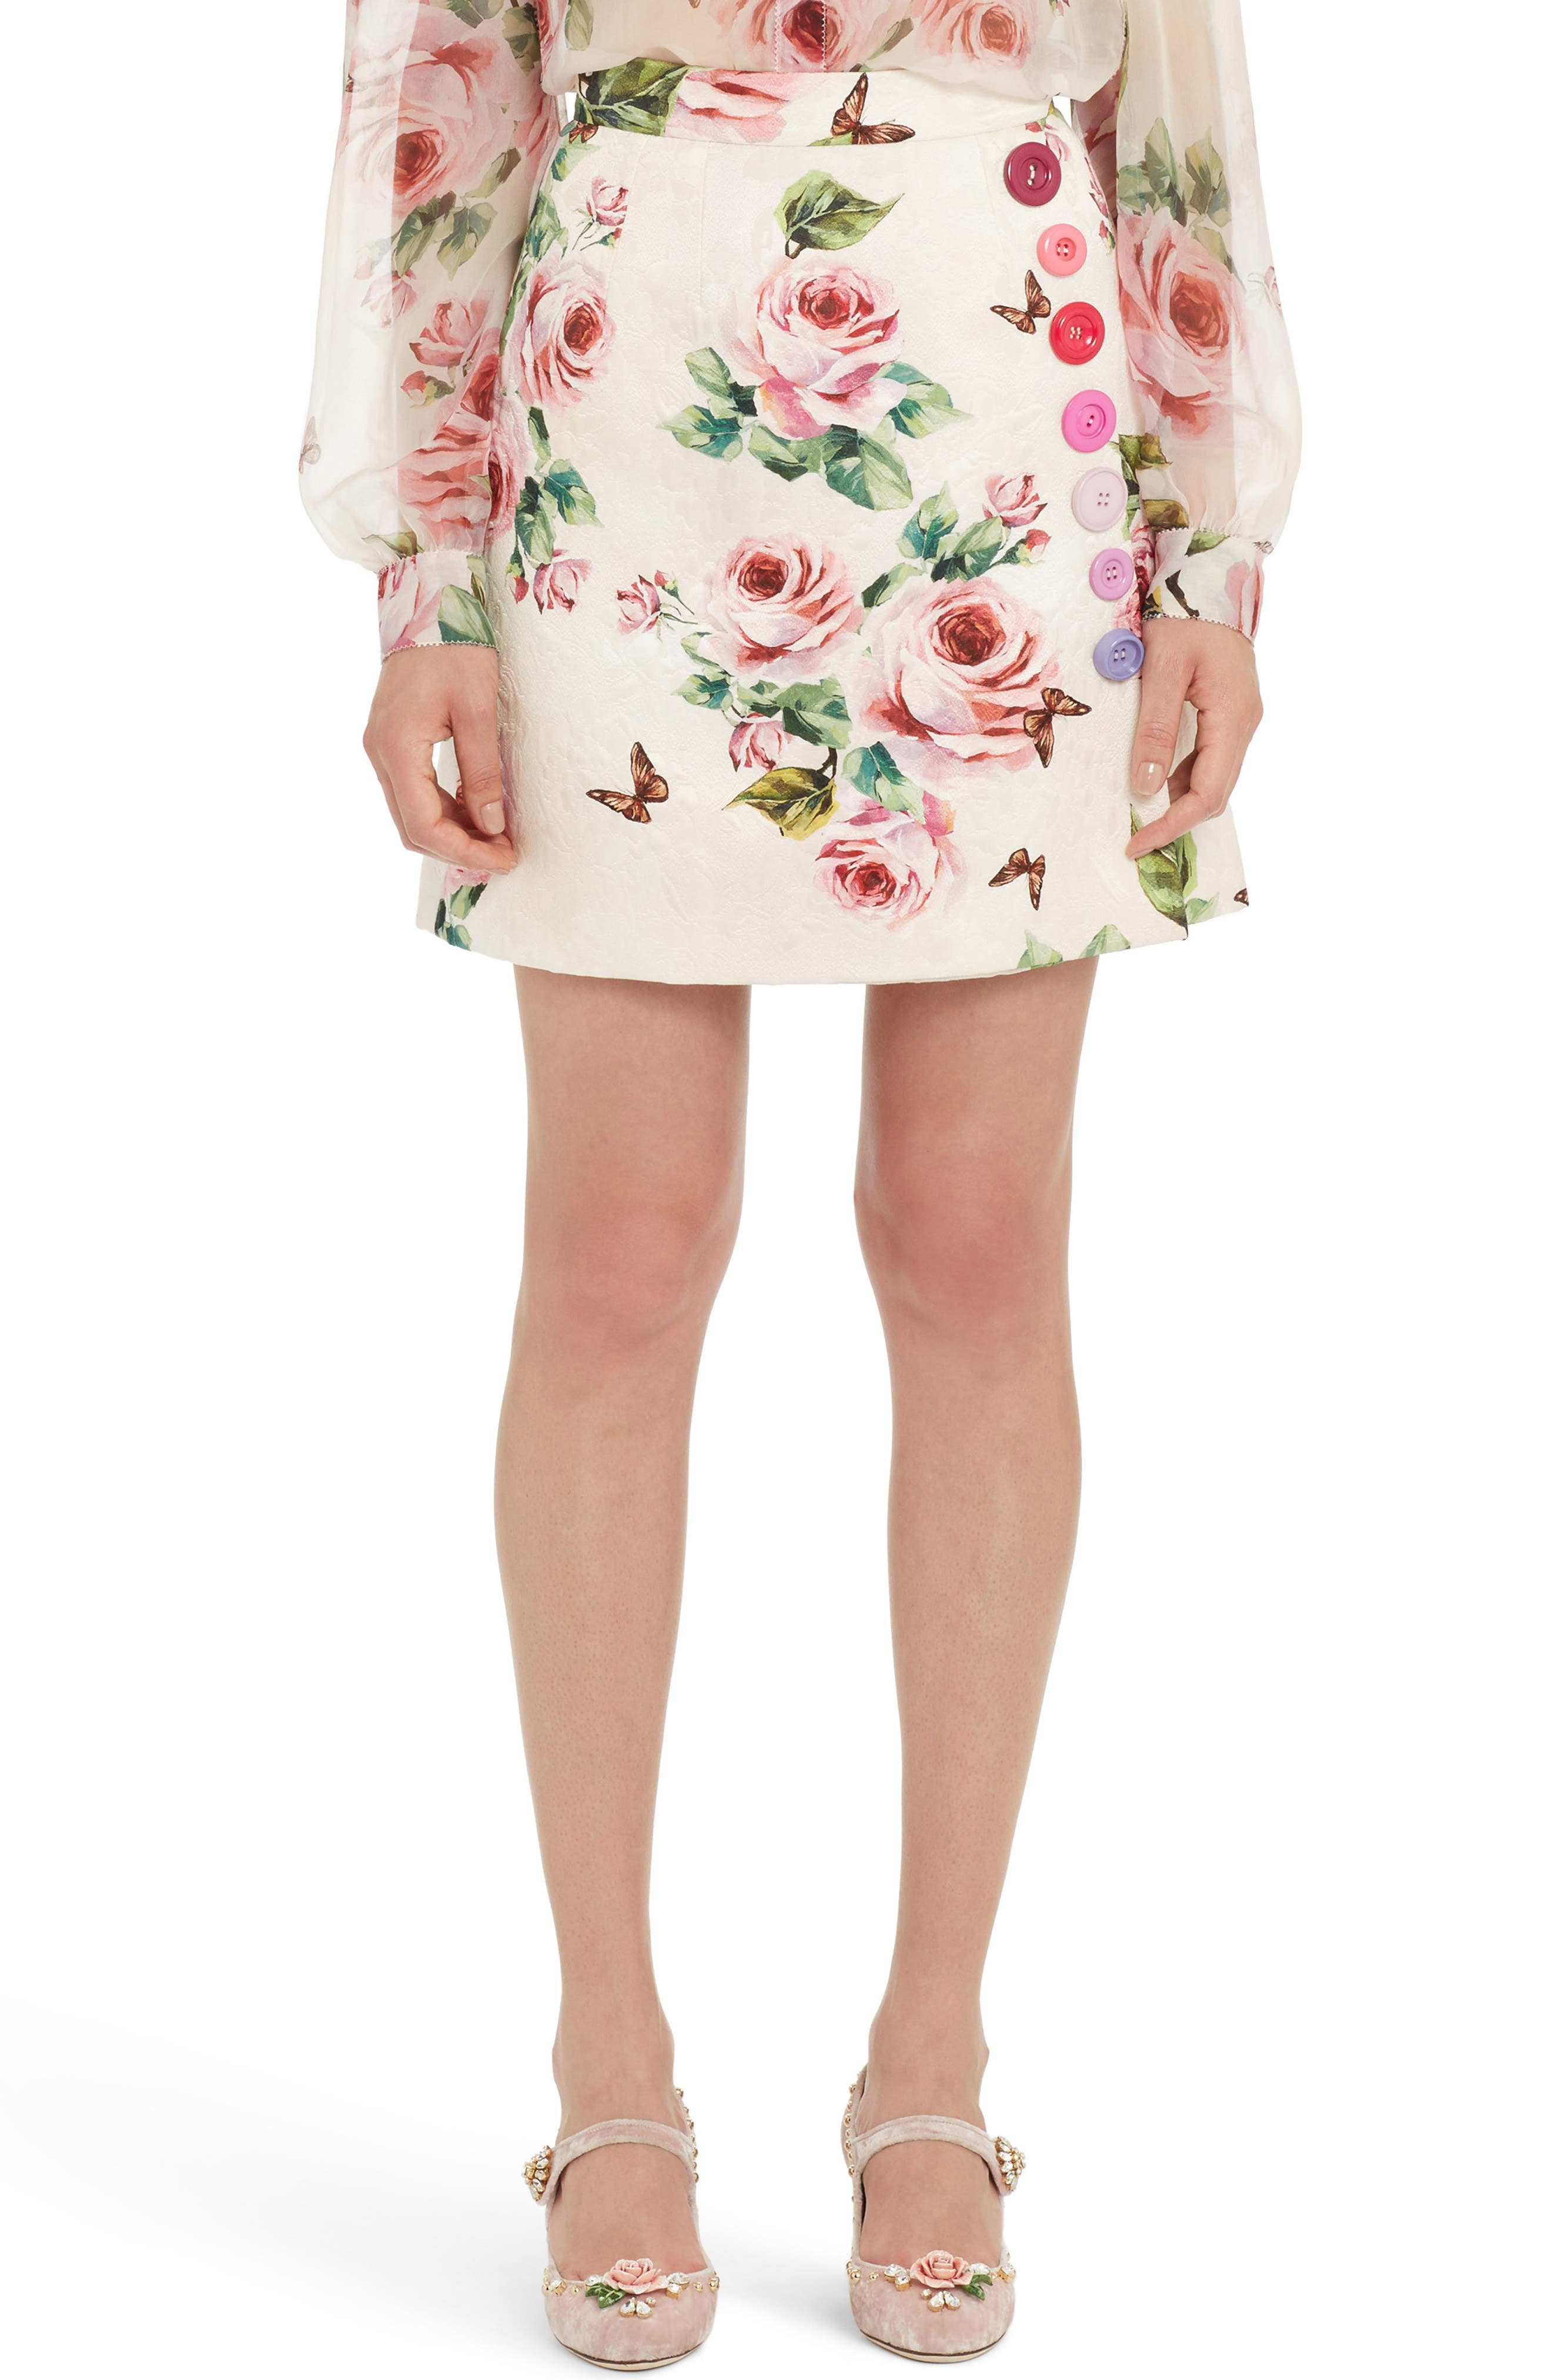 Dolce&Gabbana Button Embellished Floral Skirt